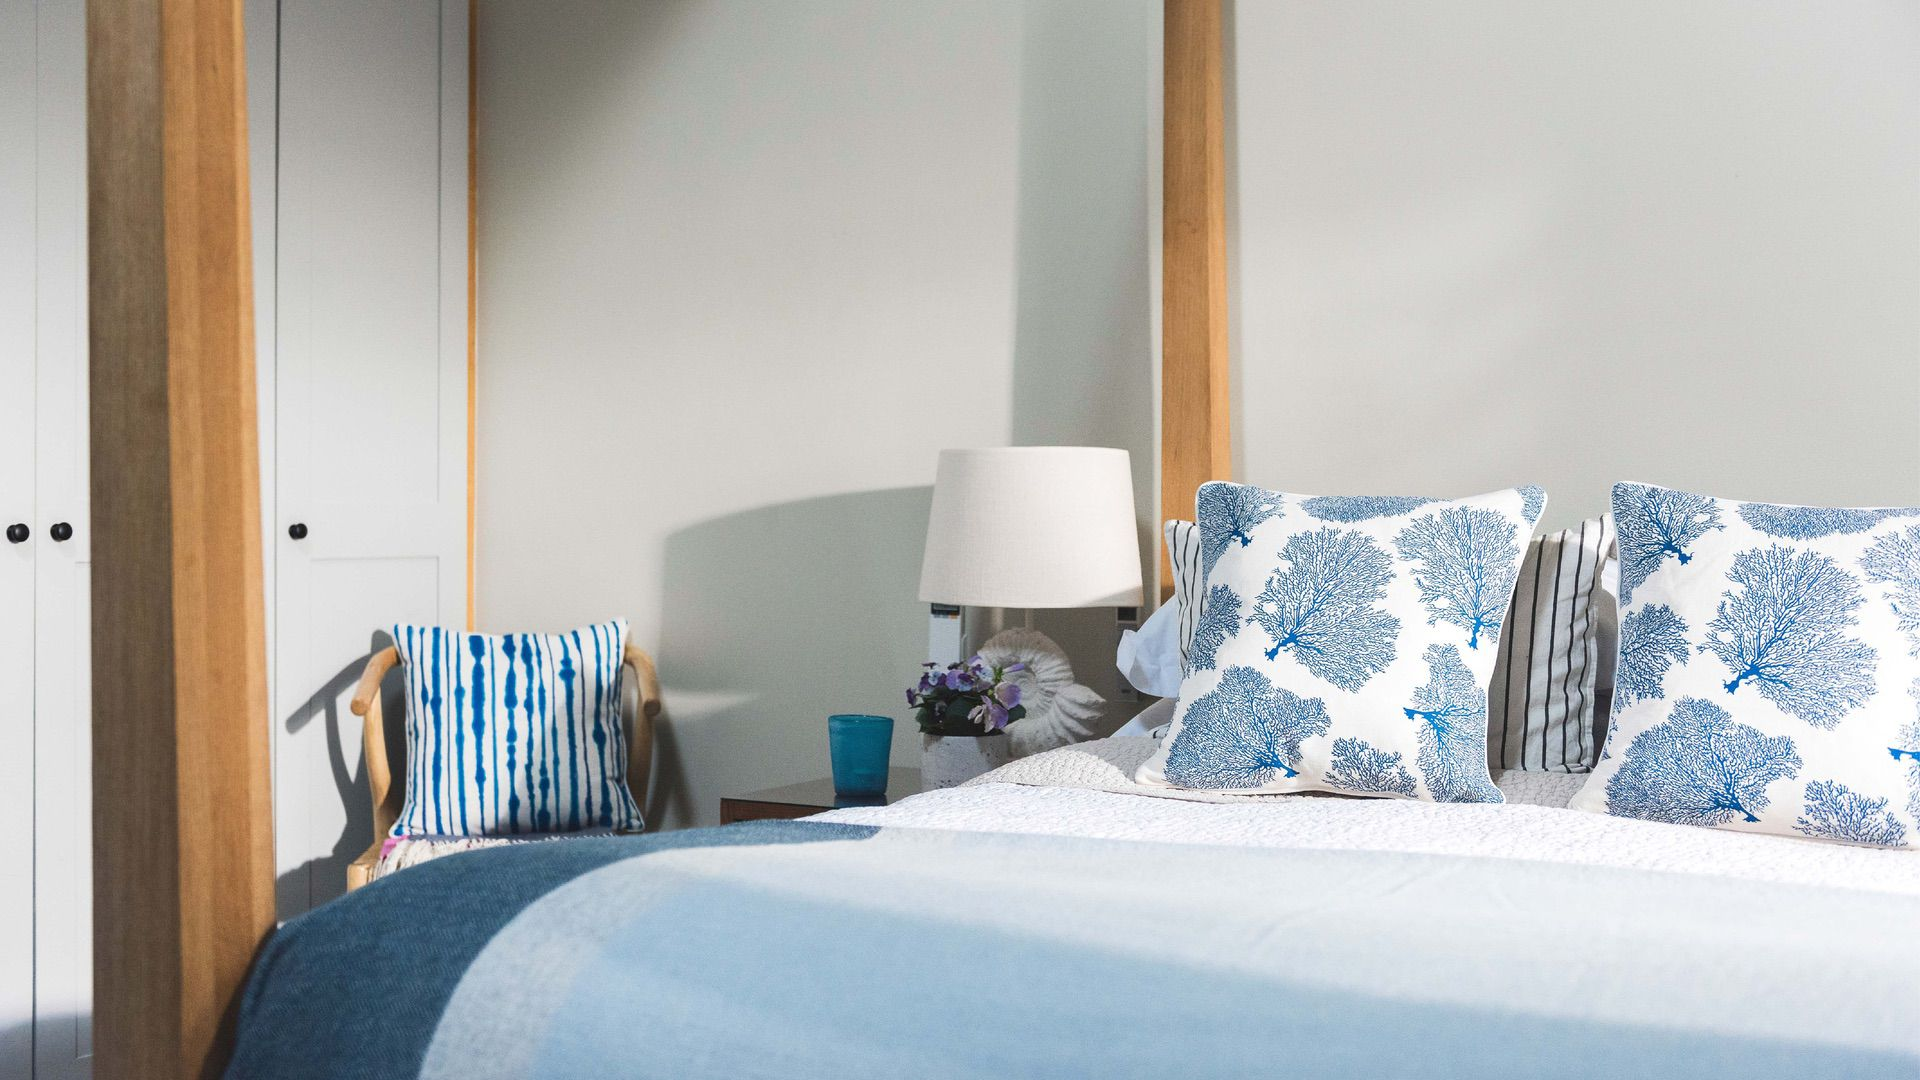 Restaurant-with-rooms-Cornwall-Rick-Stein